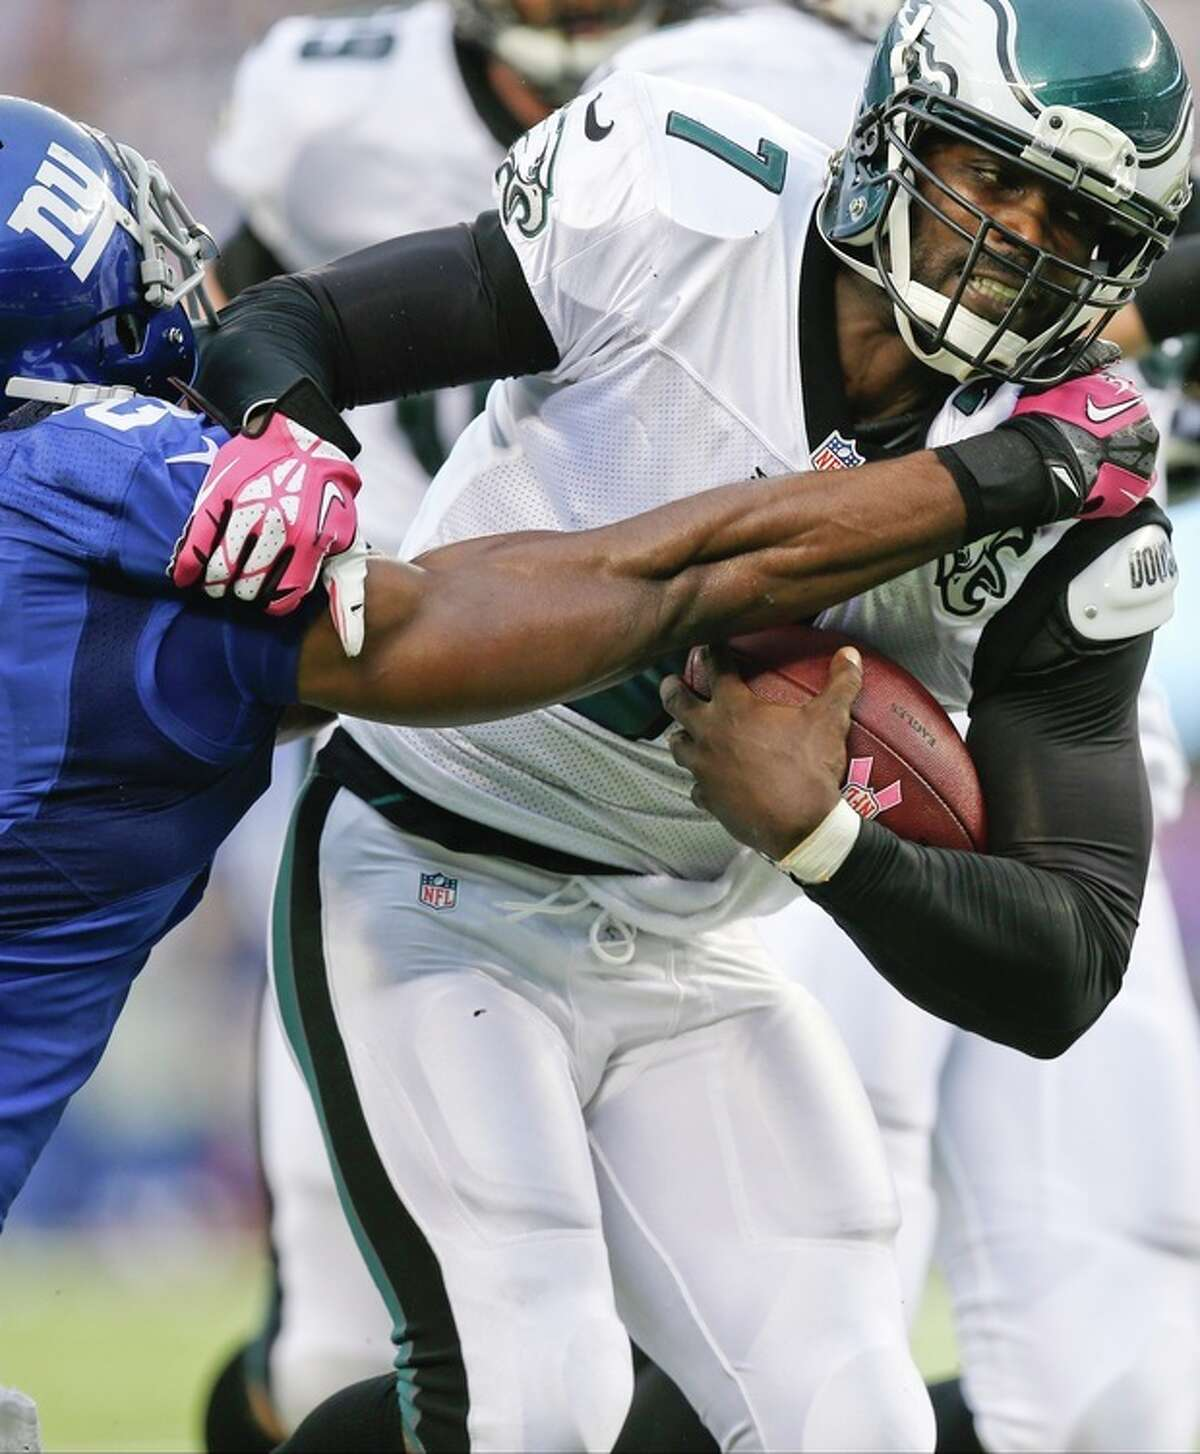 Philadelphia Eagles quarterback Michael Vick (7) fights off a tackle by New York Giants' Ryan Mundy during the first half of an NFL football game on Sunday, Oct. 6, 2013, in East Rutherford, N.J. (AP Photo/Kathy Willens)